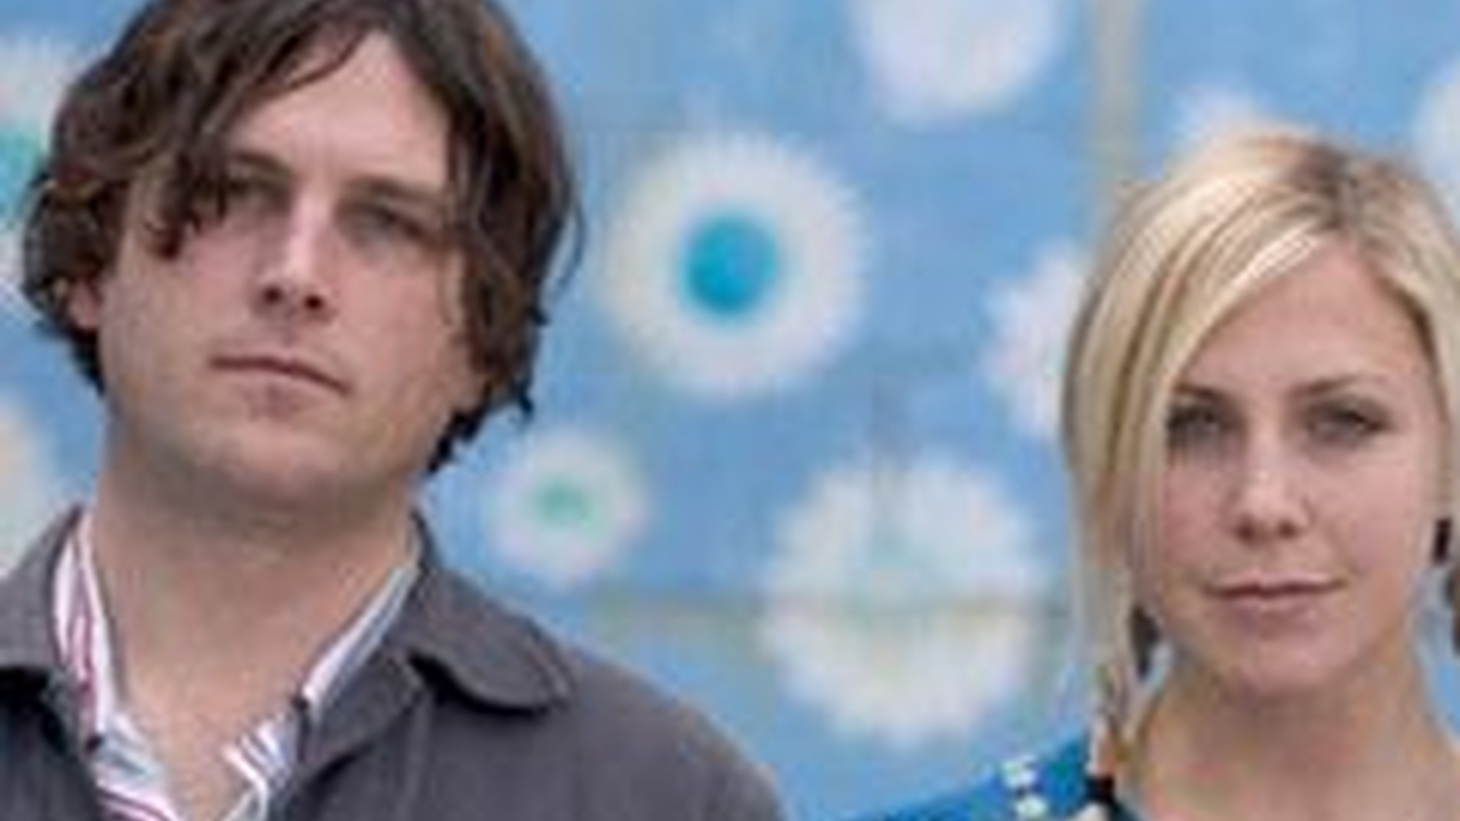 L.A. based married duo, The Submarines perform their new songs on Morning Becomes Eclectic at 11:15am.